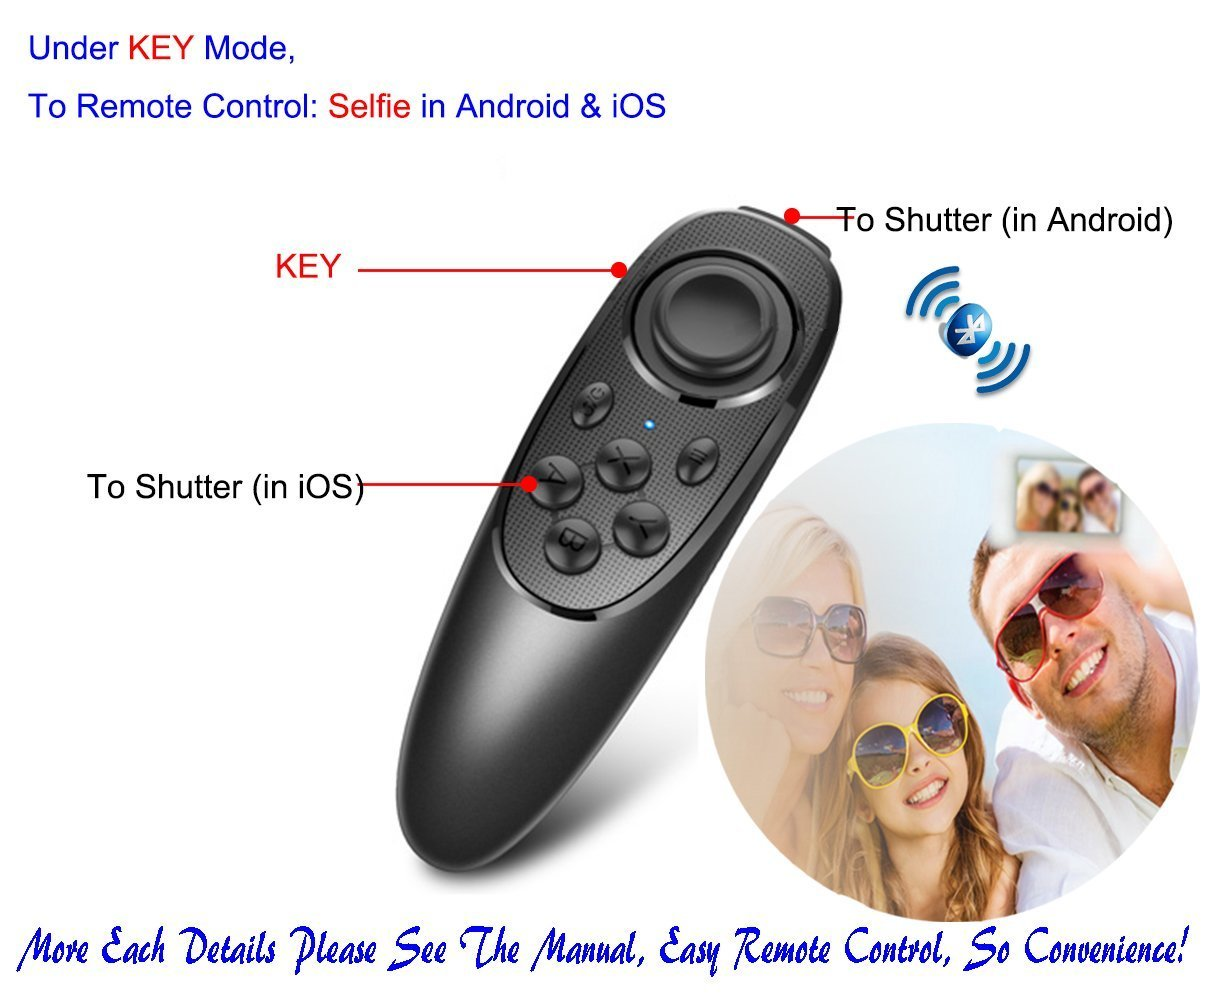 VR Remote Controller Gamepad Bluetooth Control VR Video, Film, Game, Selfie, Flip E-book/PPT/Nook page, Mouse, in Virtual Reality Headset 3D Glasses PC Tablet laptop Samsung Gear VR iPhone Smart Phone by VR EMPIRE (Image #5)